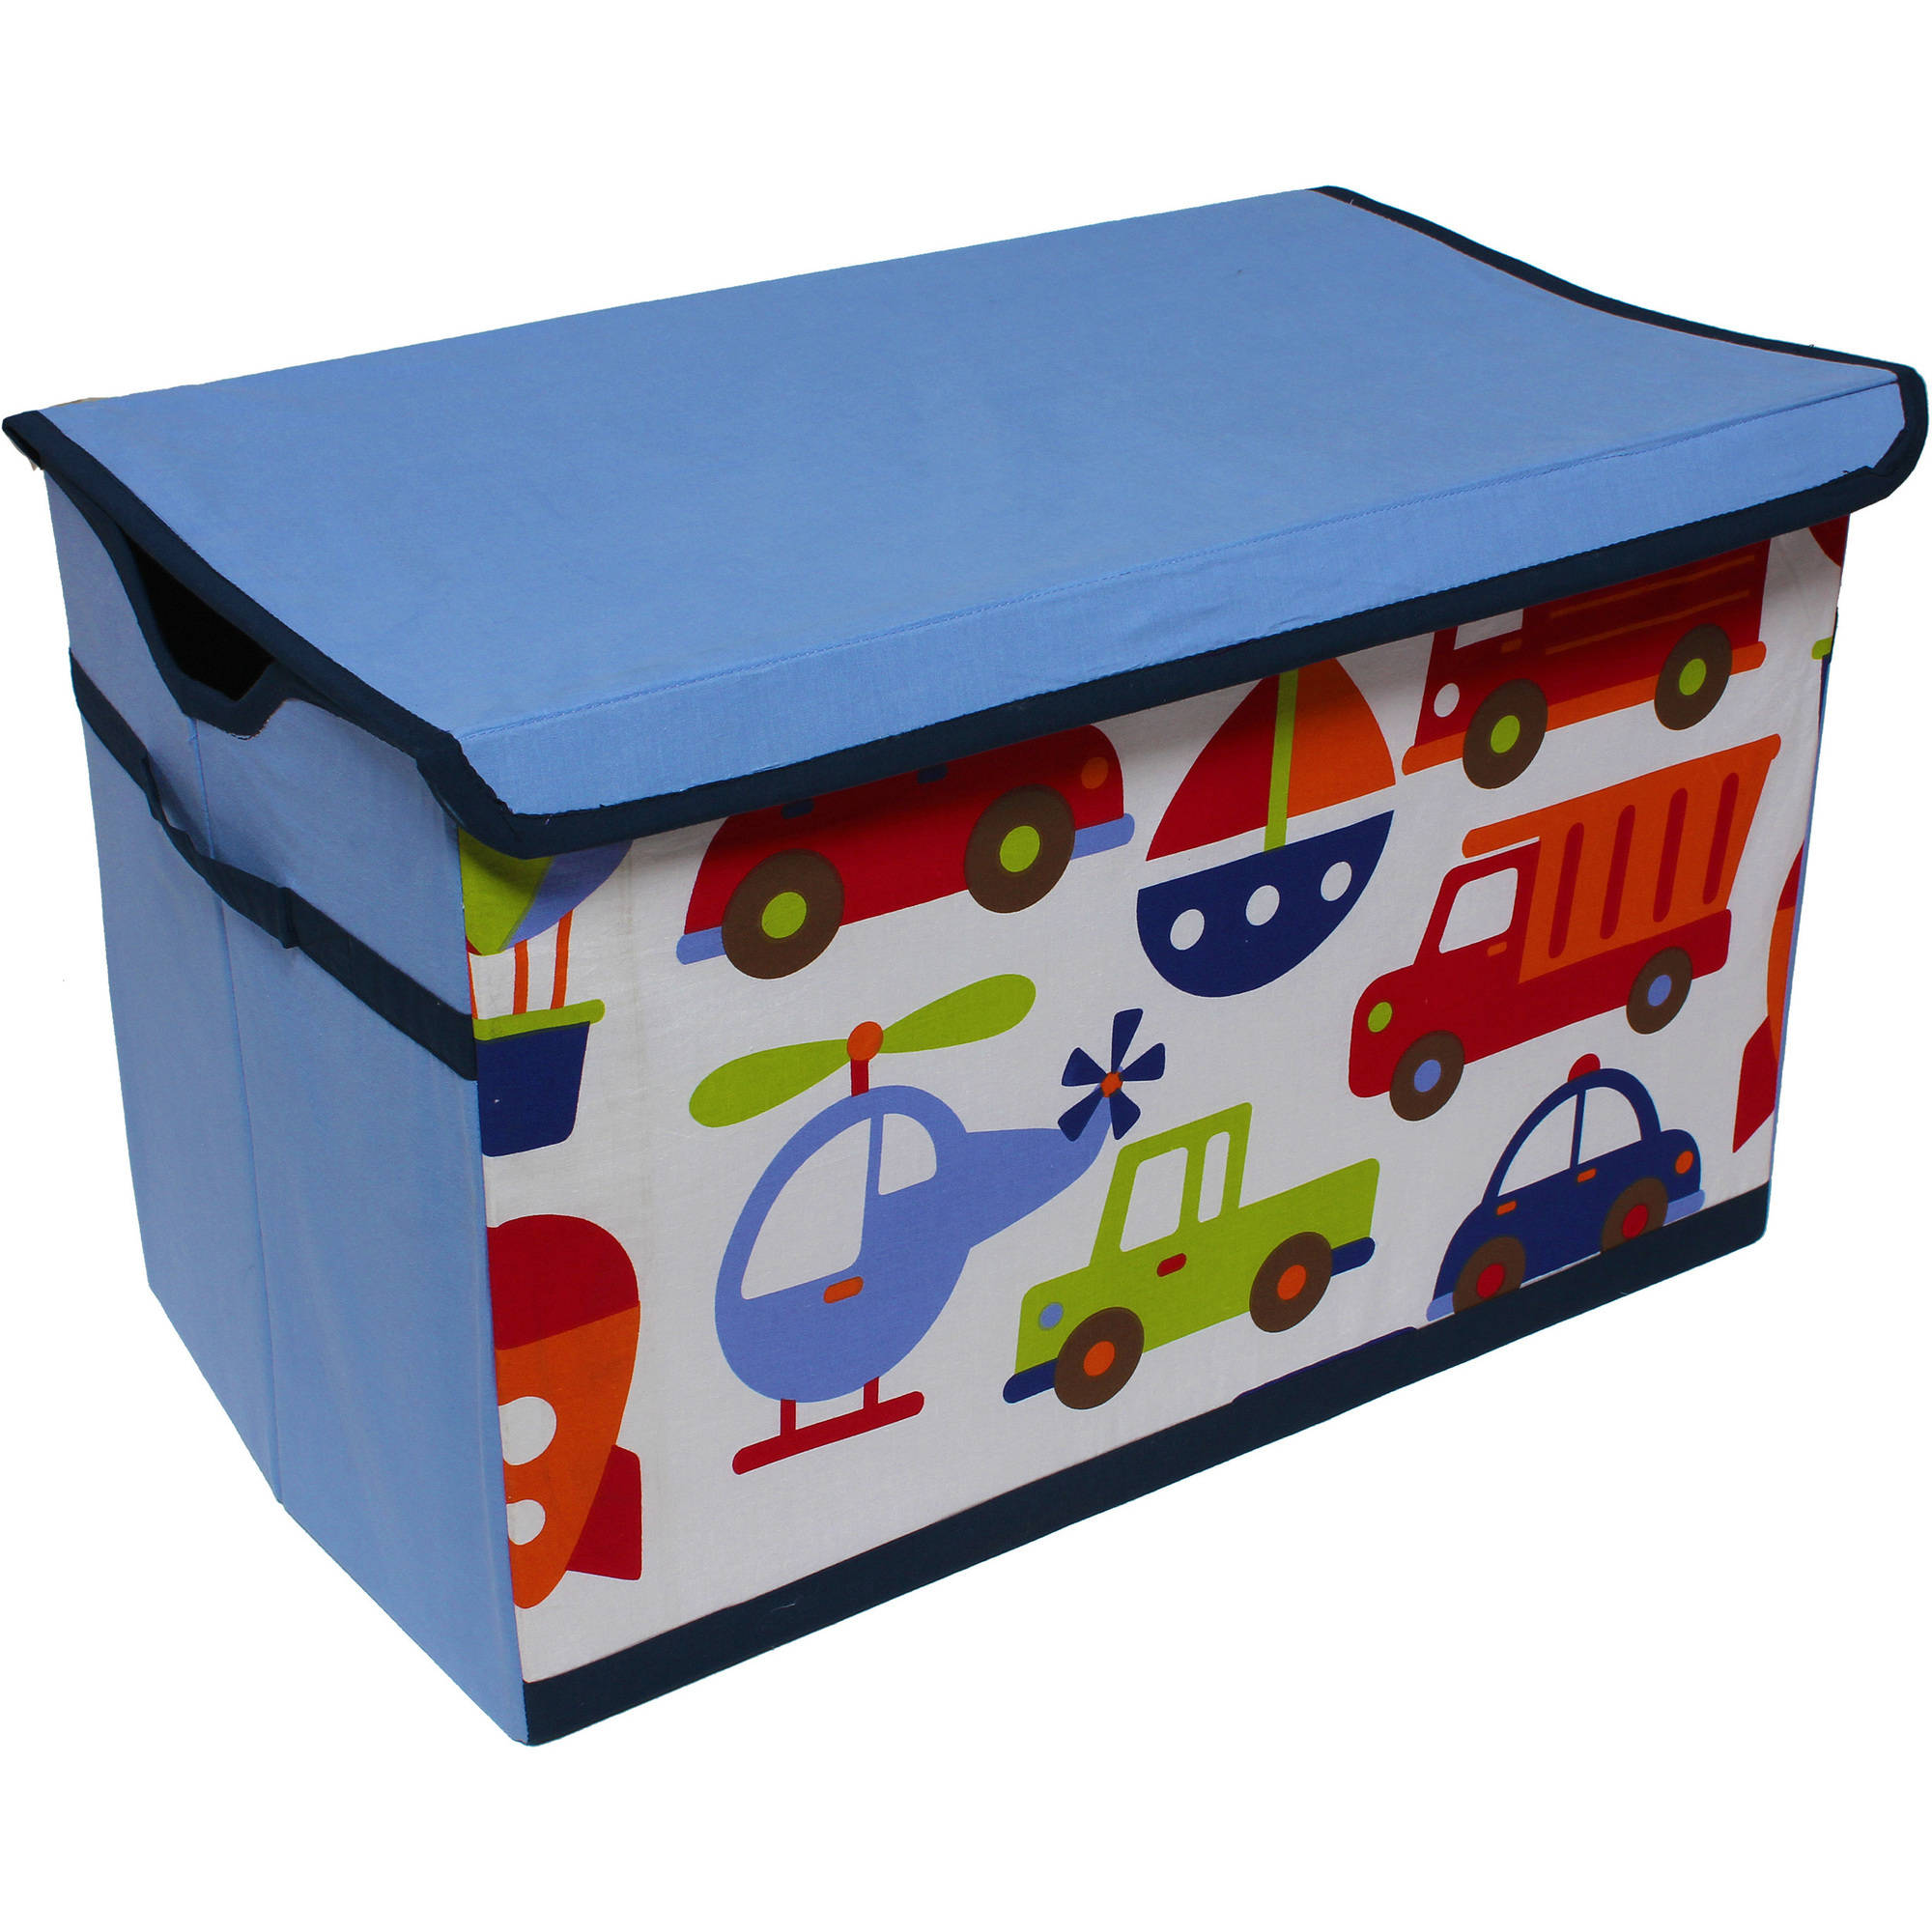 Bacati Transportation Cotton Percale Fabric covered Storage, Toy Chest, 24.5 L x 15 W x 14 H inches by